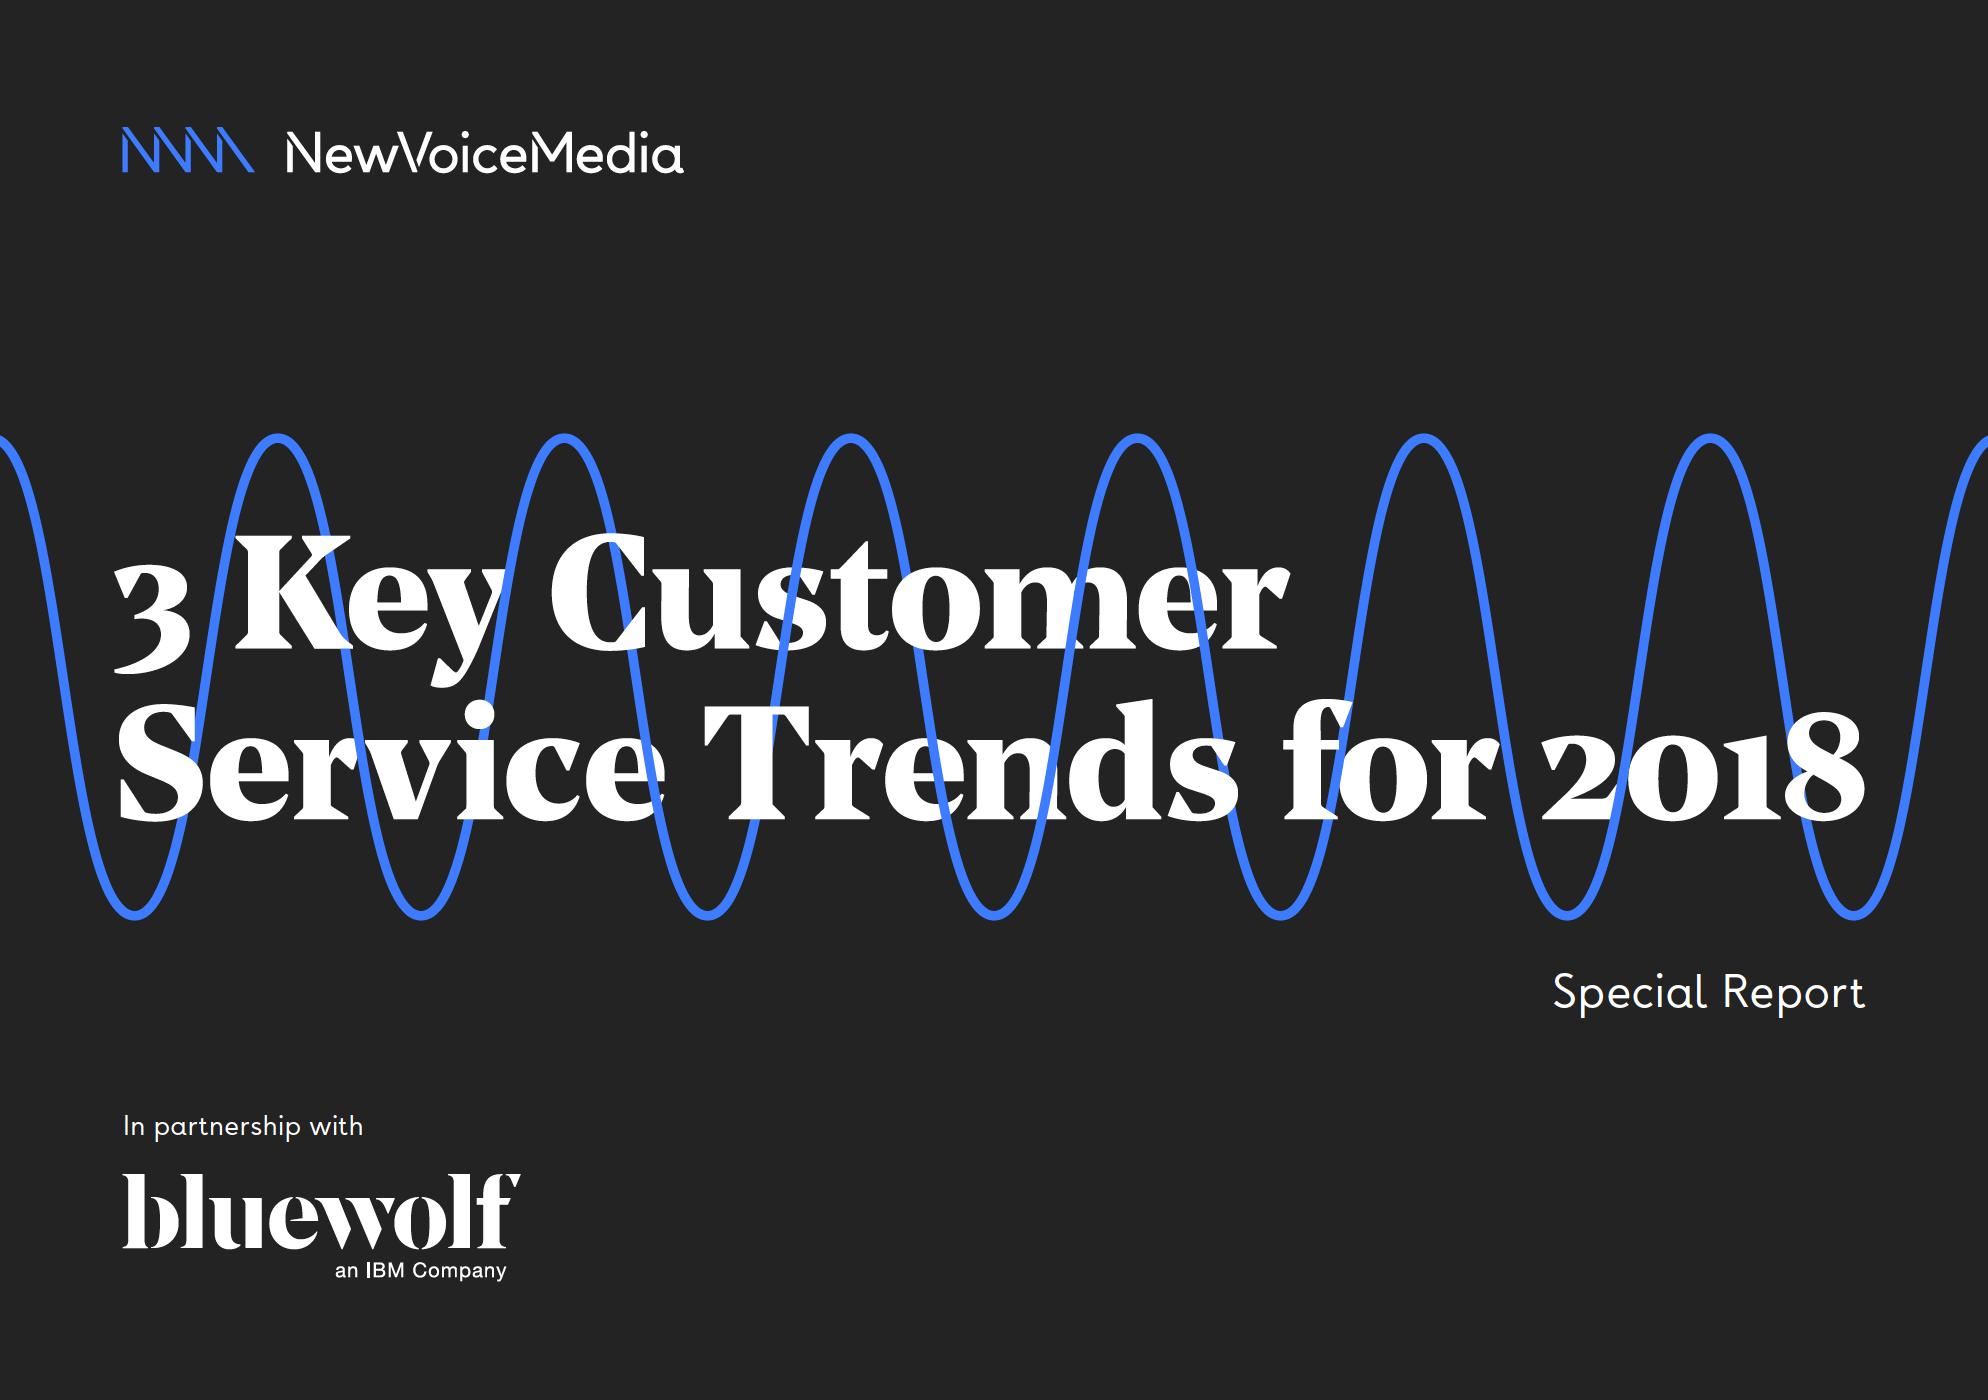 Research: 3 Key Customer Service Trends for 2018